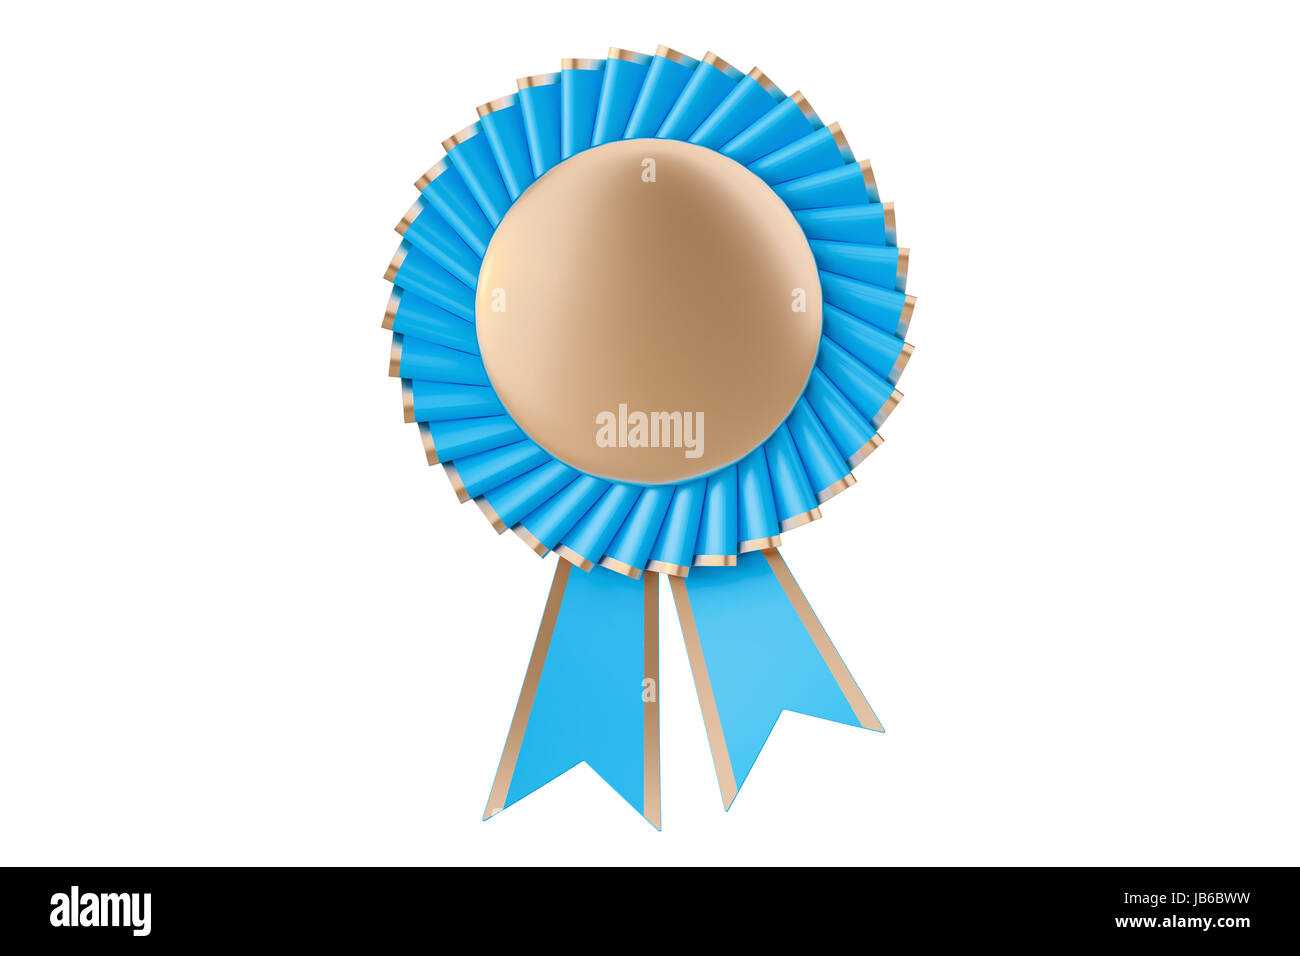 Blue winning award, prize, medal or badge with ribbons. 3D rendering isolated on white background - Stock Image